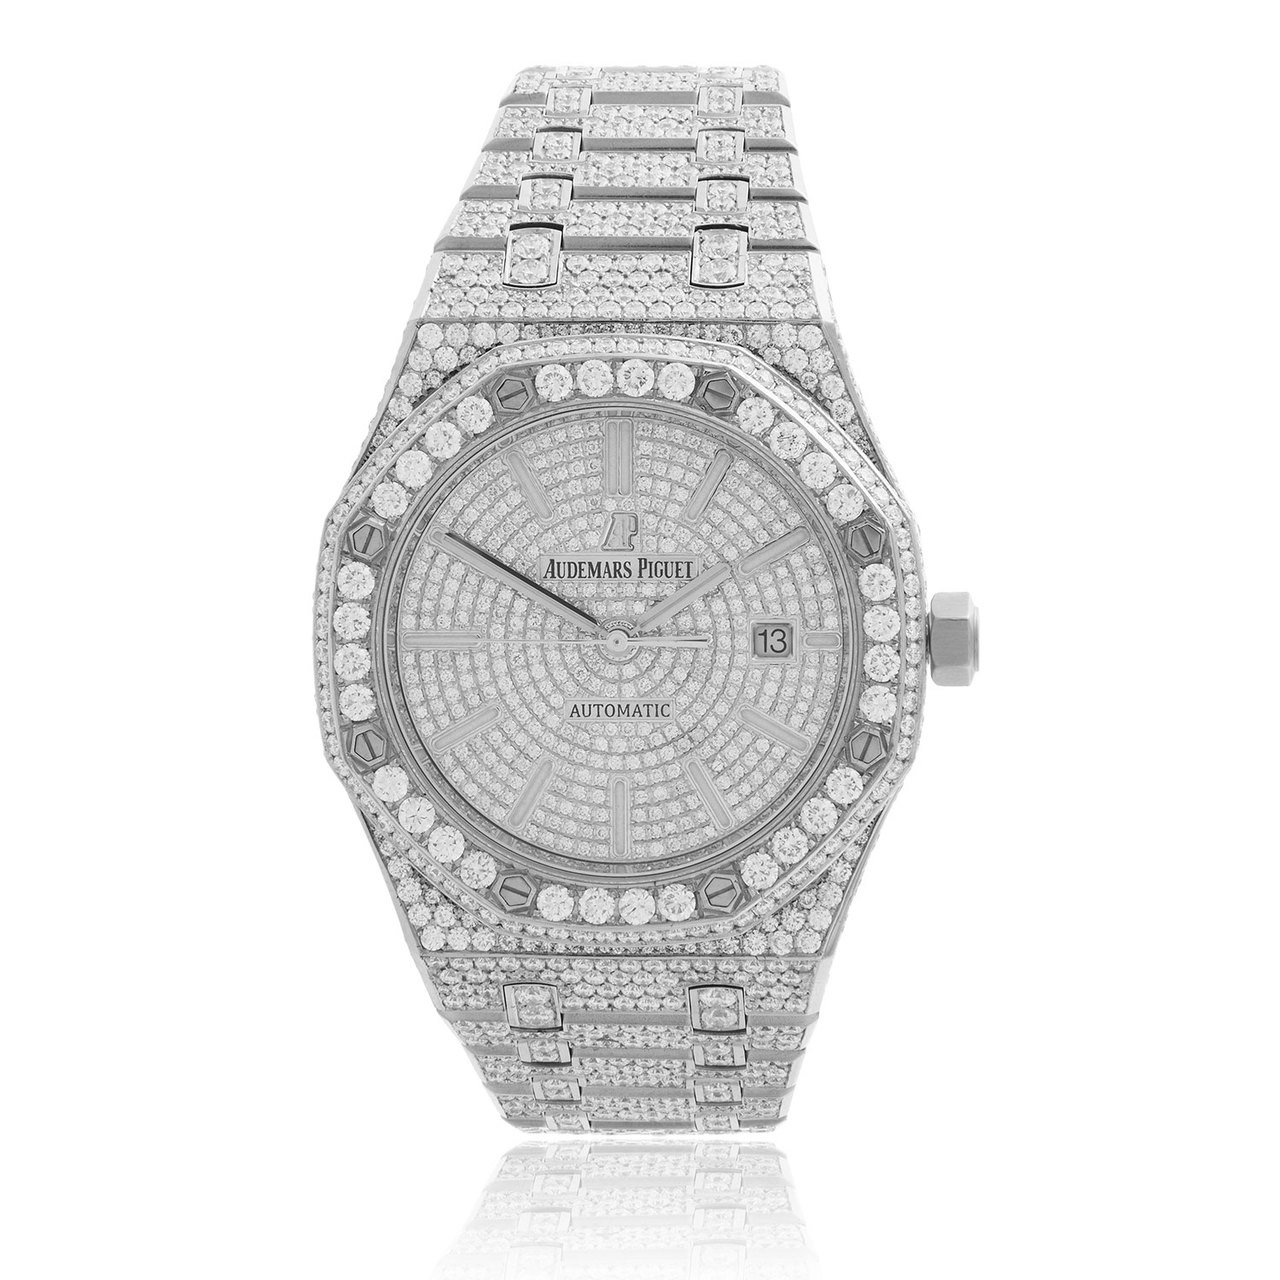 Audemars Piguet Royal Oak Stainless Steel 20ct Diamond Watch